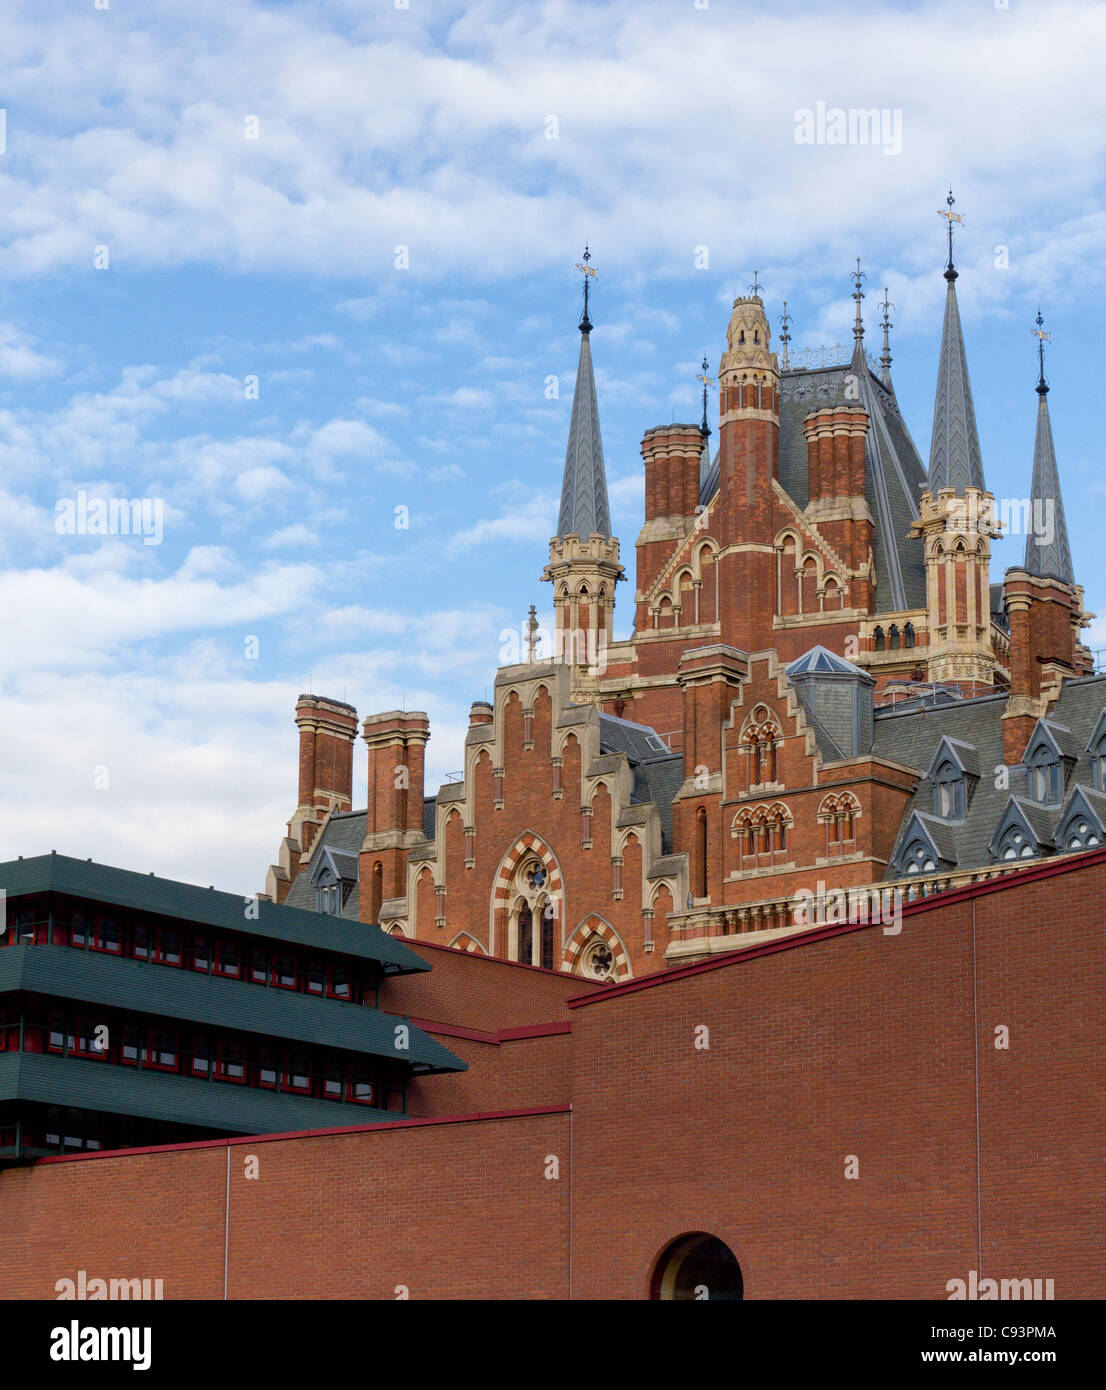 The British Library and the Victorian gothic architecture of St Pancras station, London - Stock Image